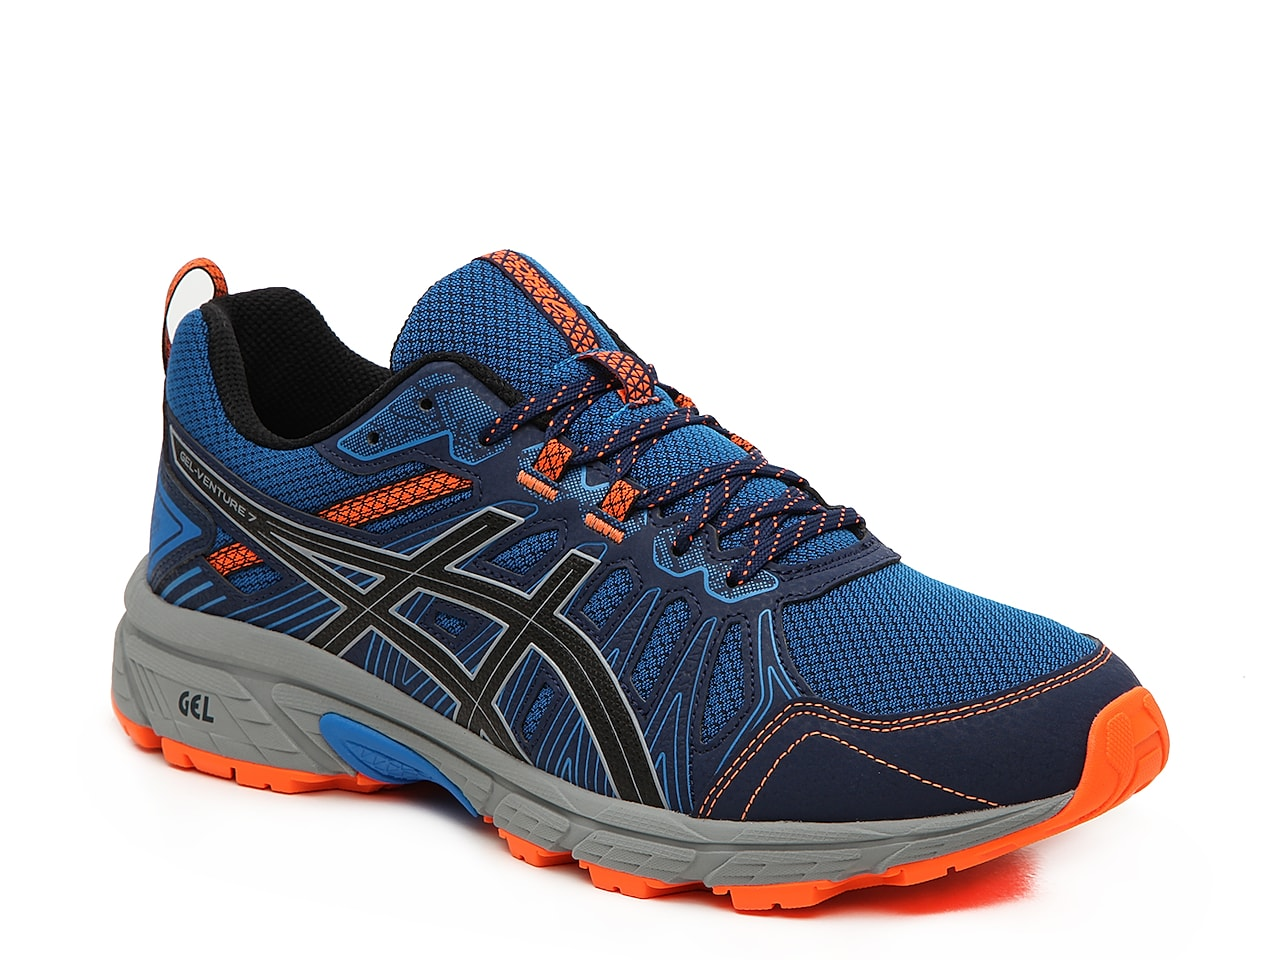 GEL-Venture 7 Trail Running Shoe - Men's